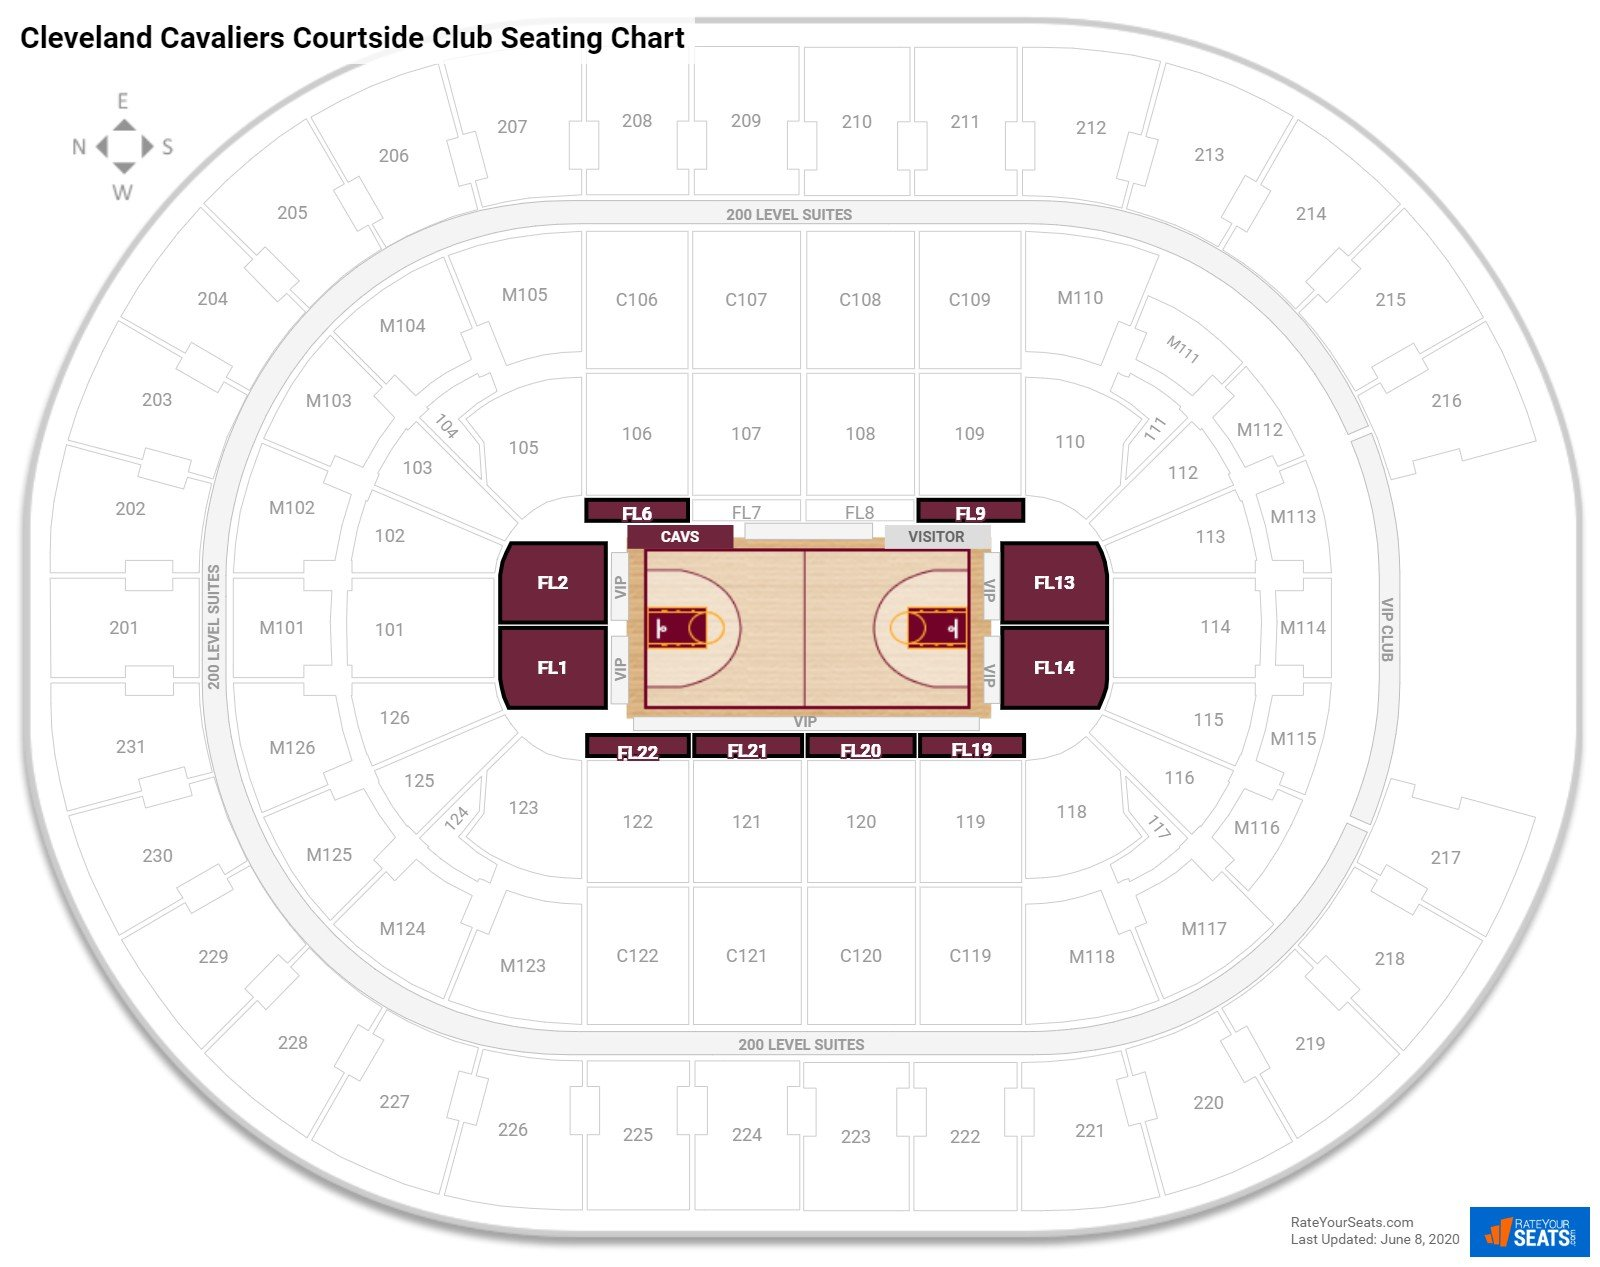 Cleveland Cavaliers Club Seating at Quicken Loans Arena RateYourSeats